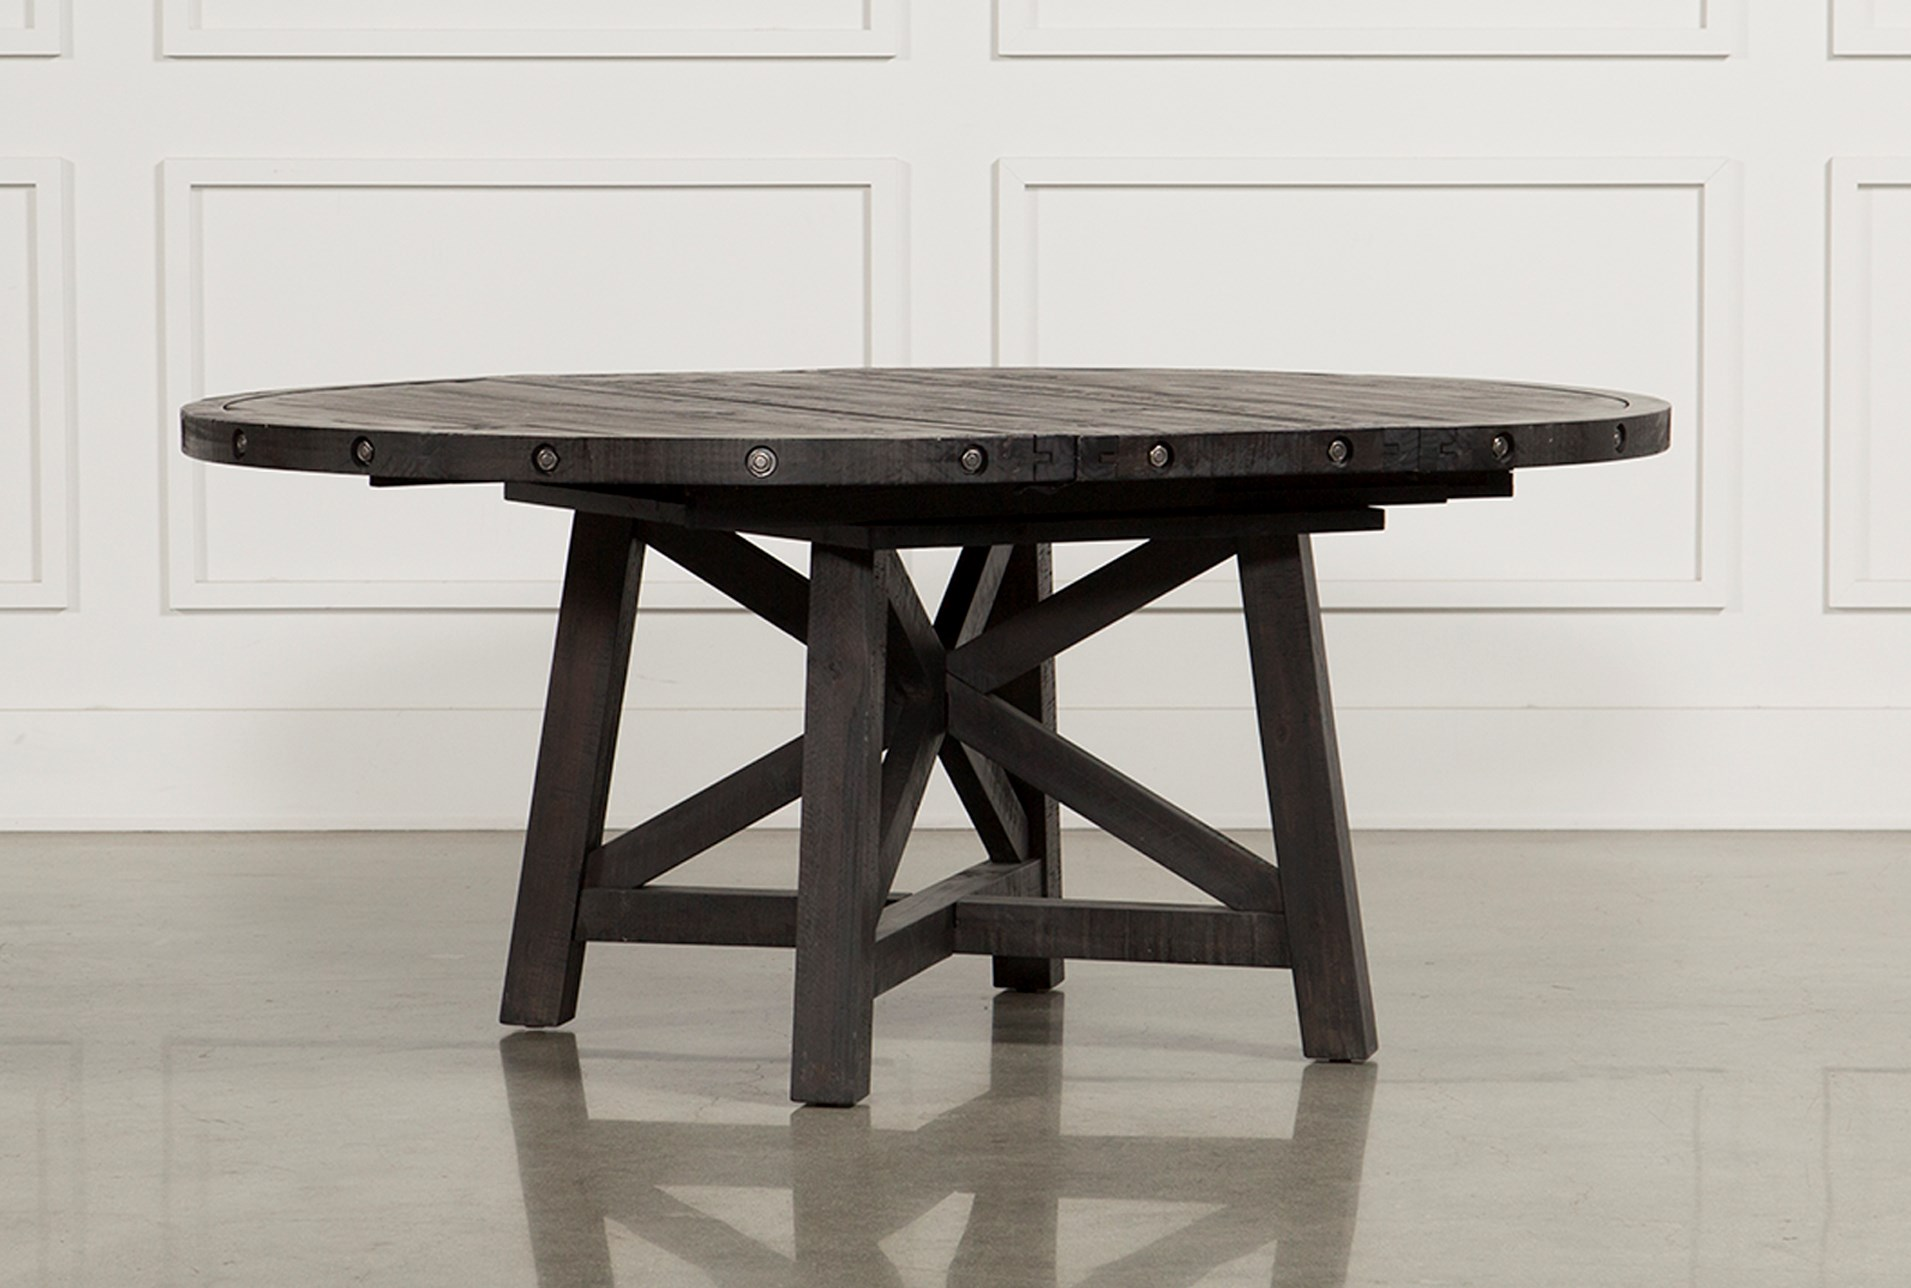 Jaxon round extension dining table qty 1 has been successfully added to your cart